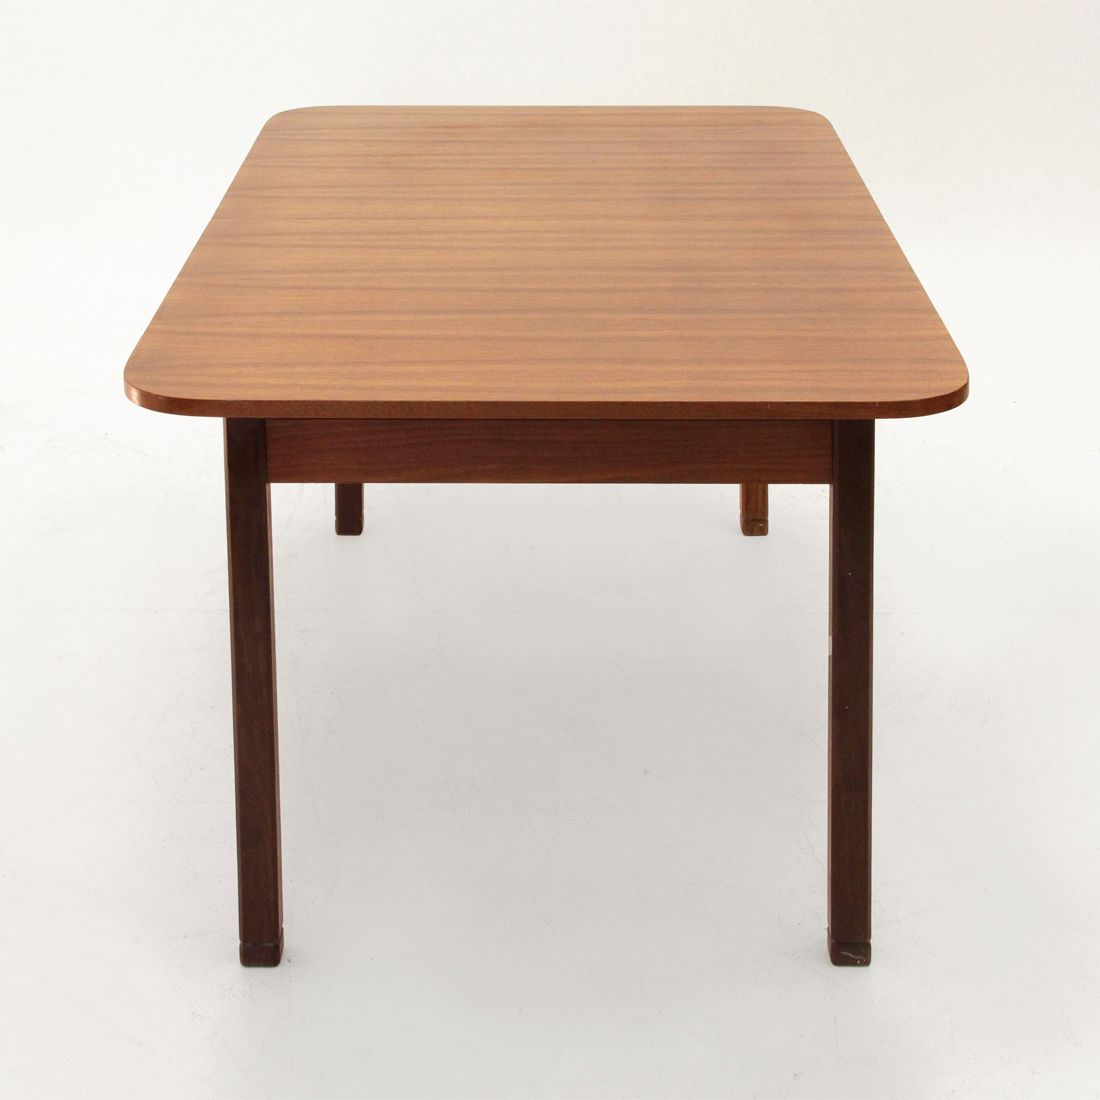 Italian extensible dining table 1960s for sale at pamono for Table extensible 3 suisses